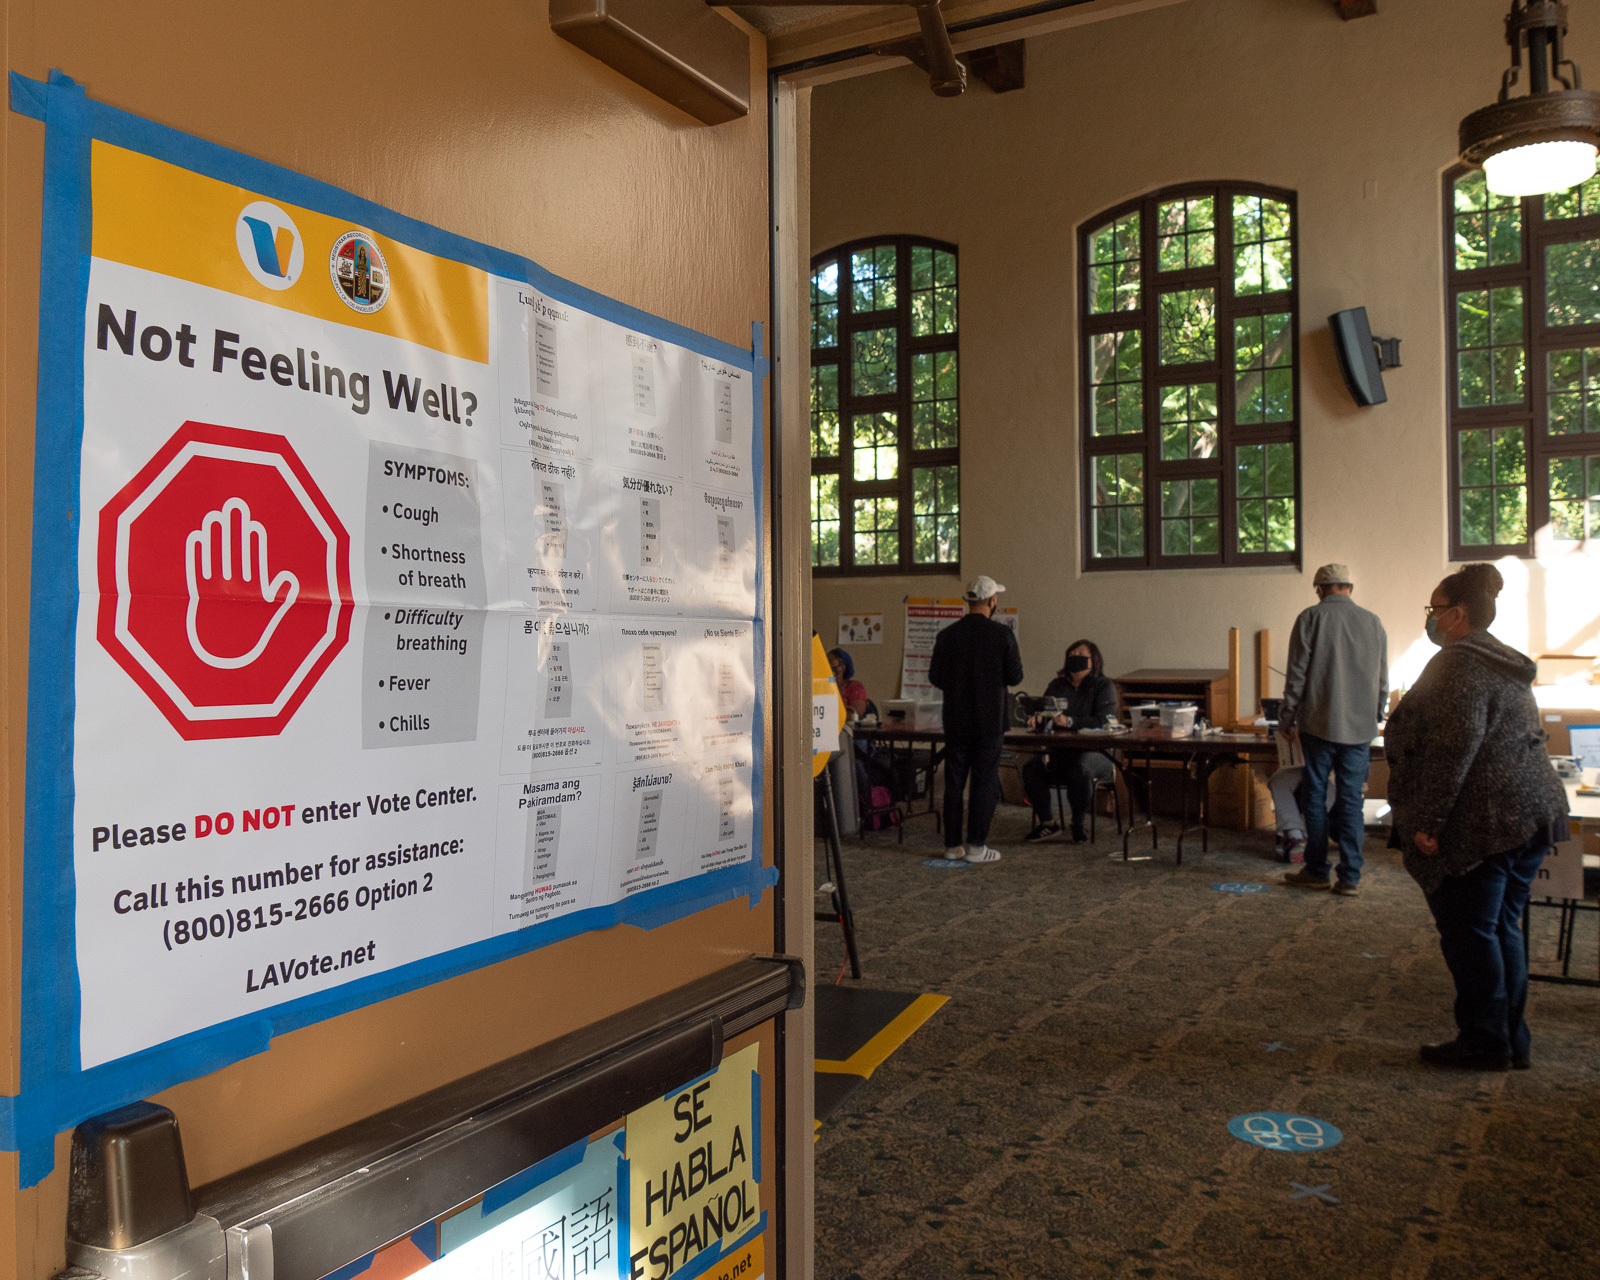 south-pasadena-news-10-28-2020-elections-vote-center-community-room-library-015